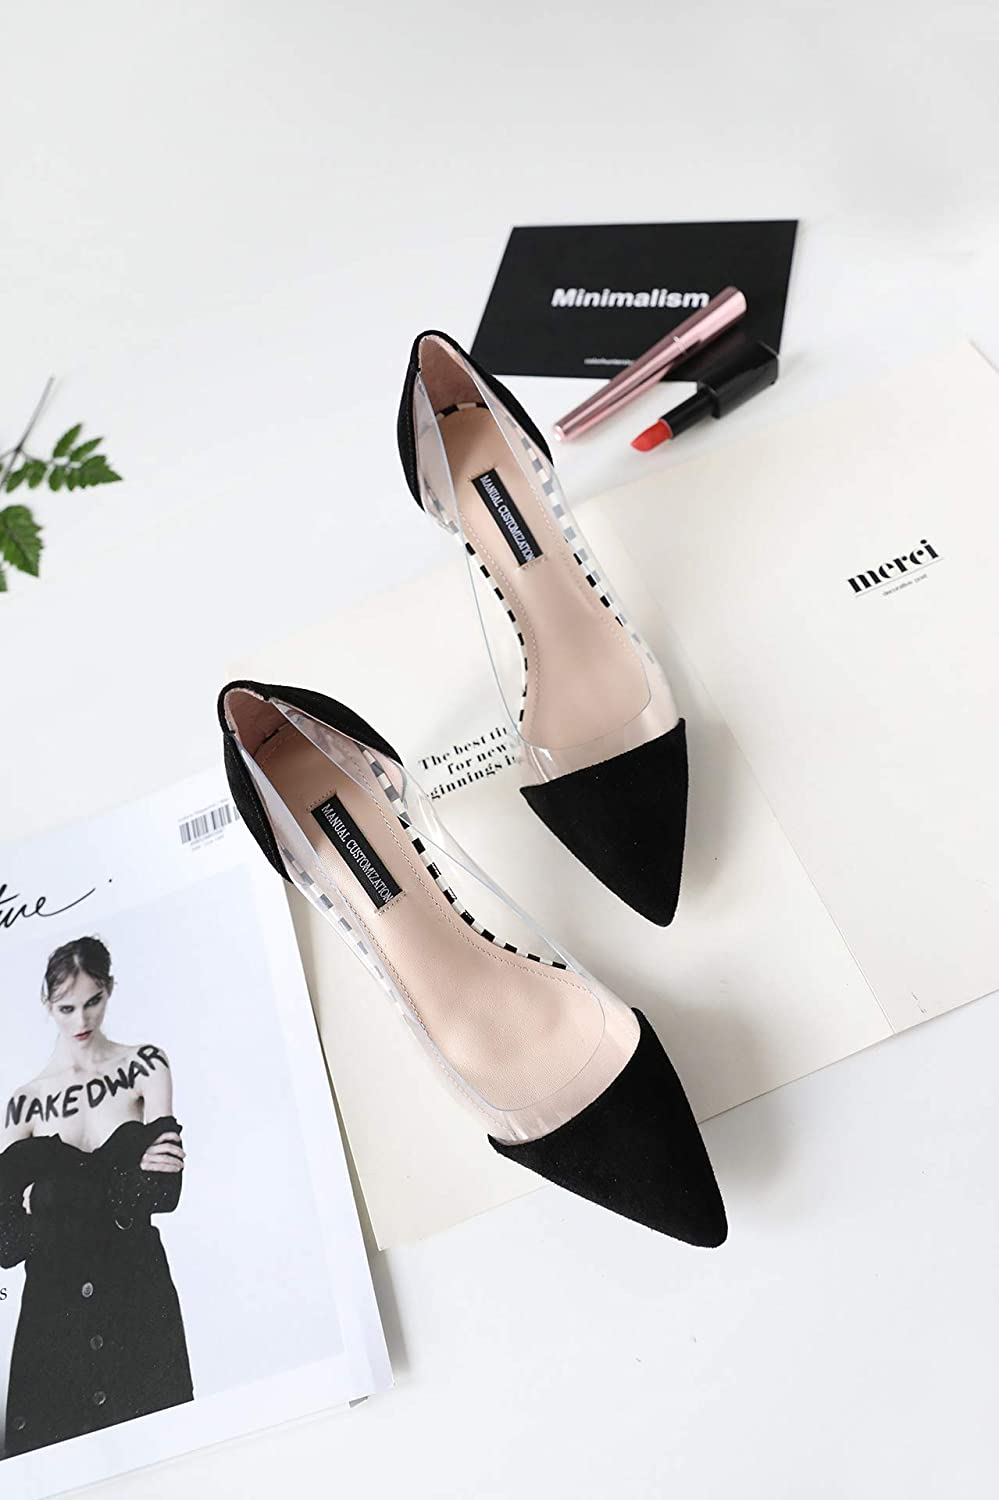 HOESCZS Frauen Single Schuhe Spitz Flach Mund Stiletto High Heel Transparent Leder Damenschuhe B07J1ZZYGK  Sport